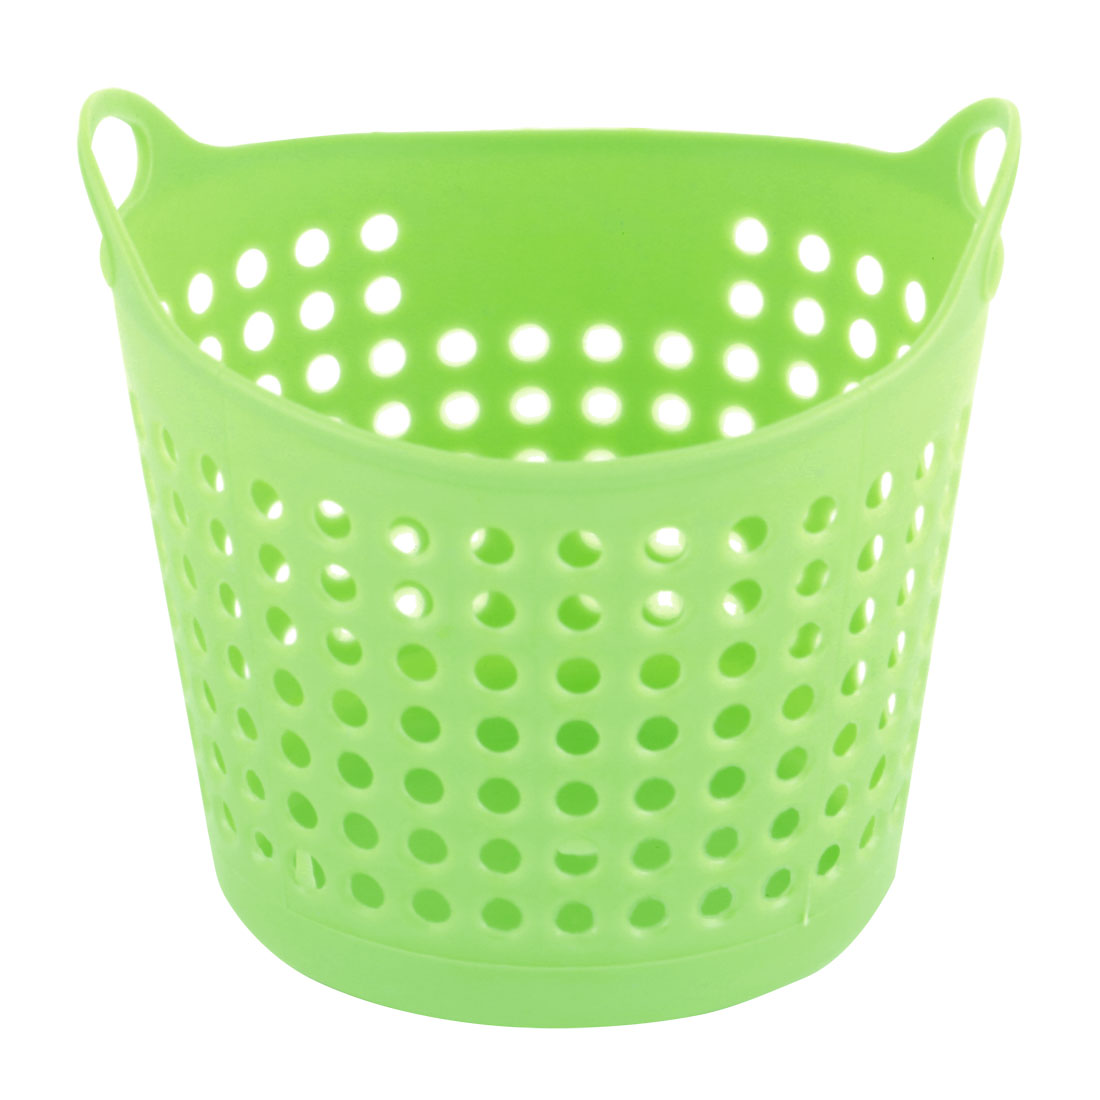 Family Office Plastic Hollow Out Pen Glasses Desk Table Storage Box Basket Green